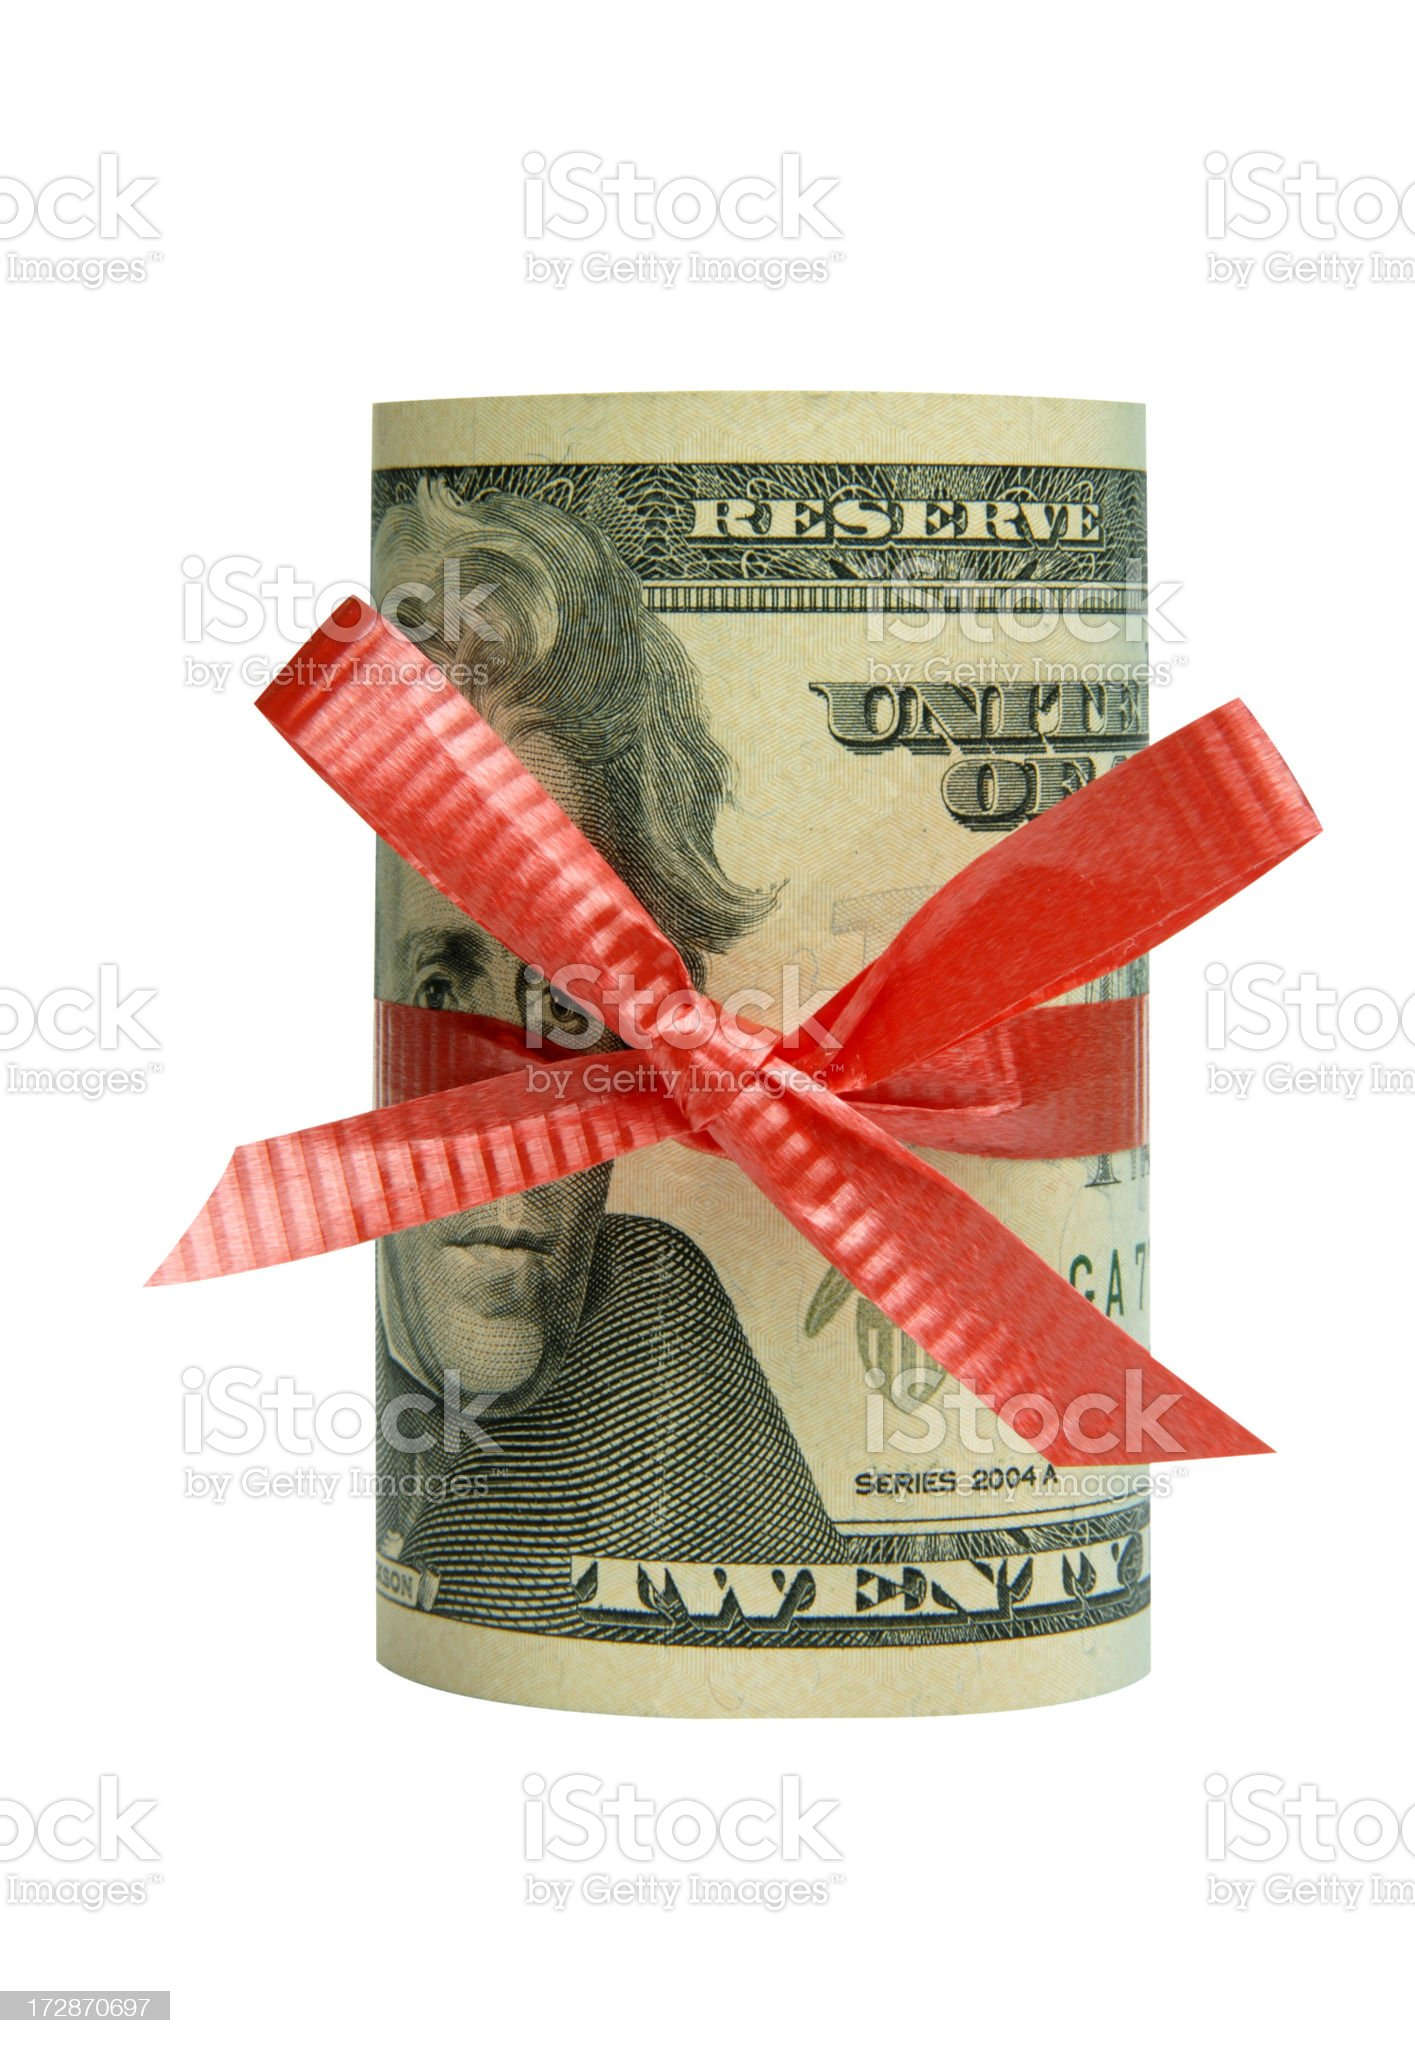 Roll of US dollars royalty-free stock photo